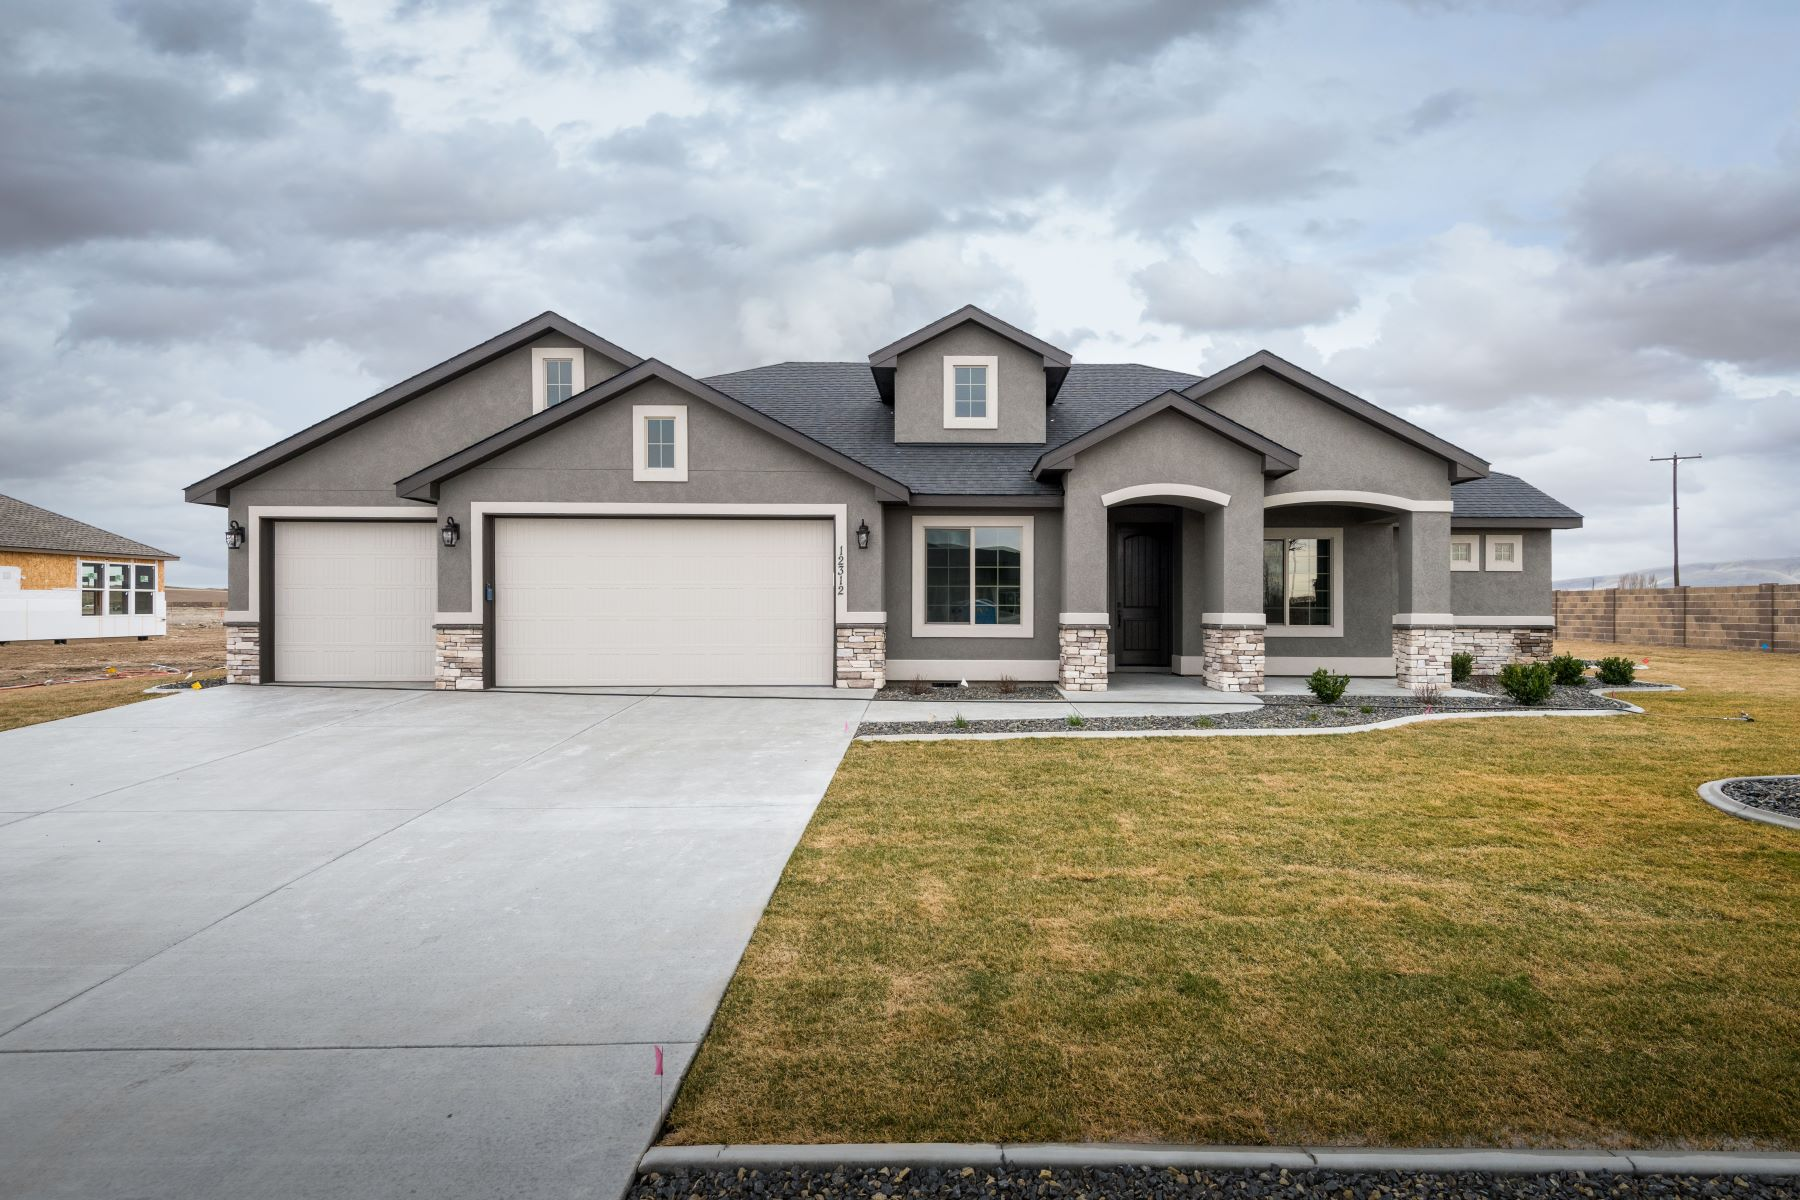 Single Family Homes for Sale at Large Rambler Basement with View 5329 S Kent Street Kennewick, Washington 99337 United States